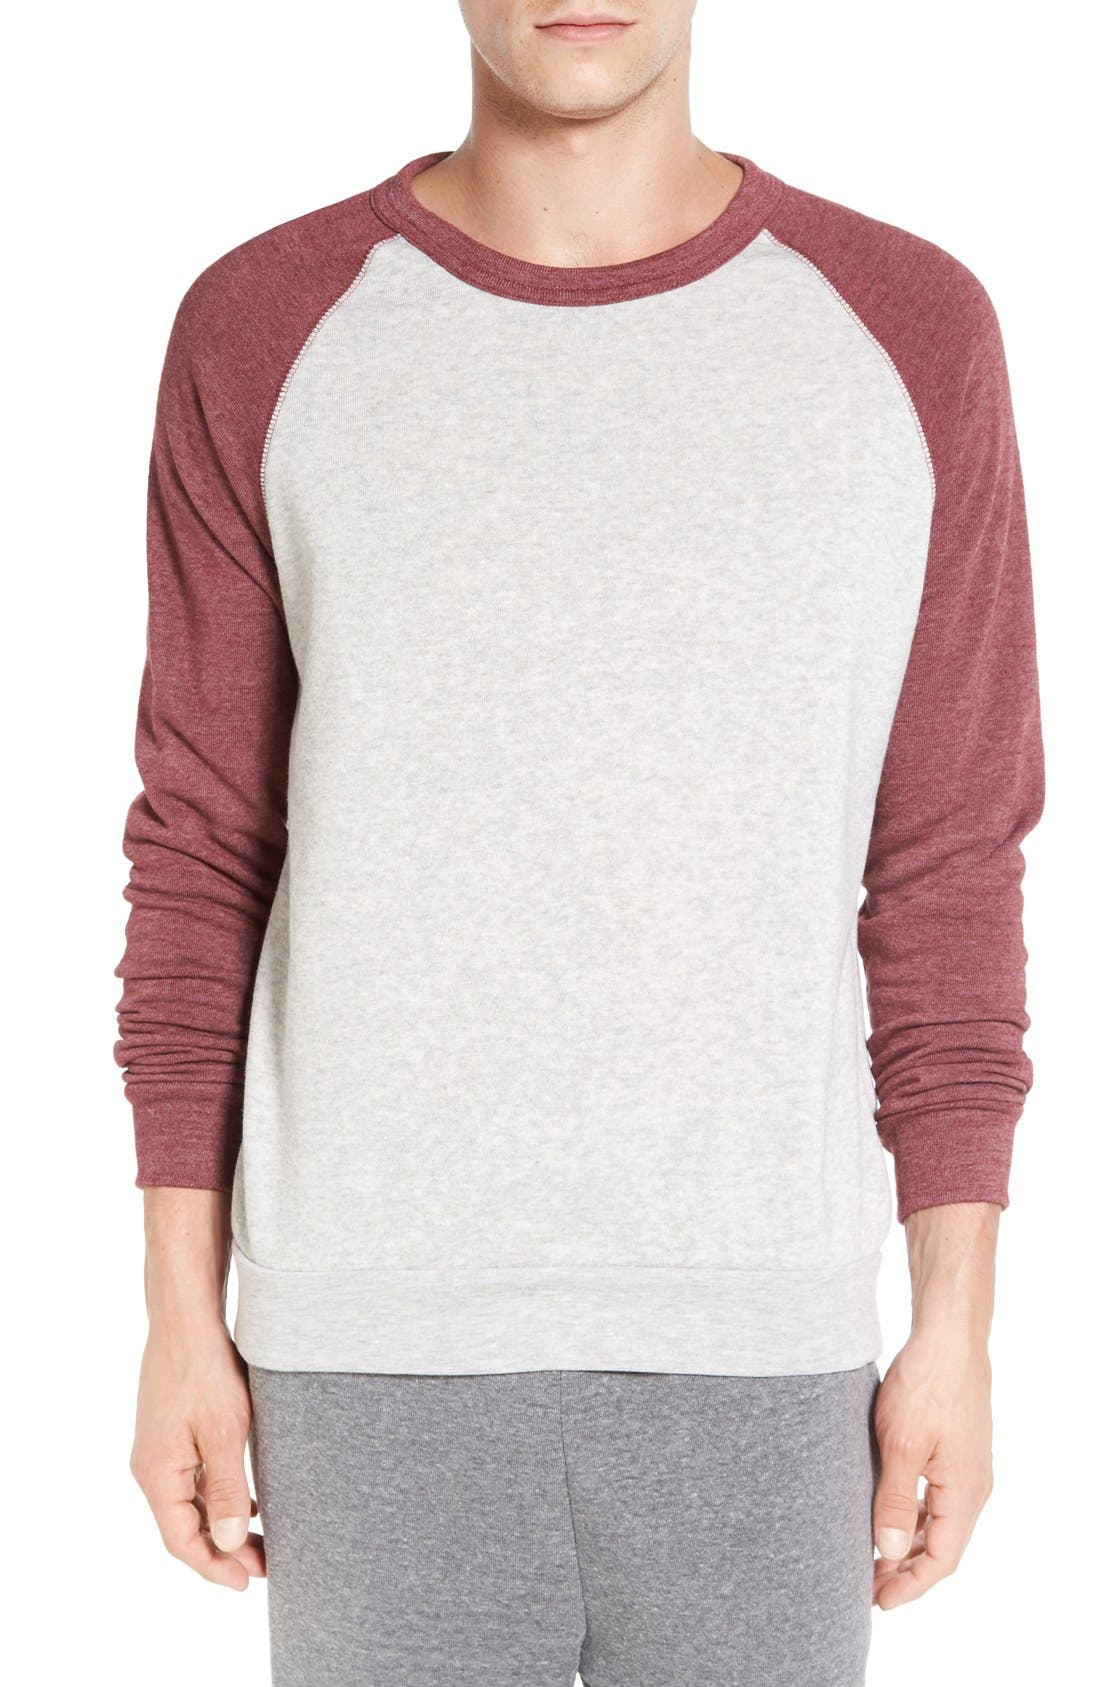 Alternate Image 1 Selected - Alternative 'The Champ' Trim Fit Colorblock Sweatshirt